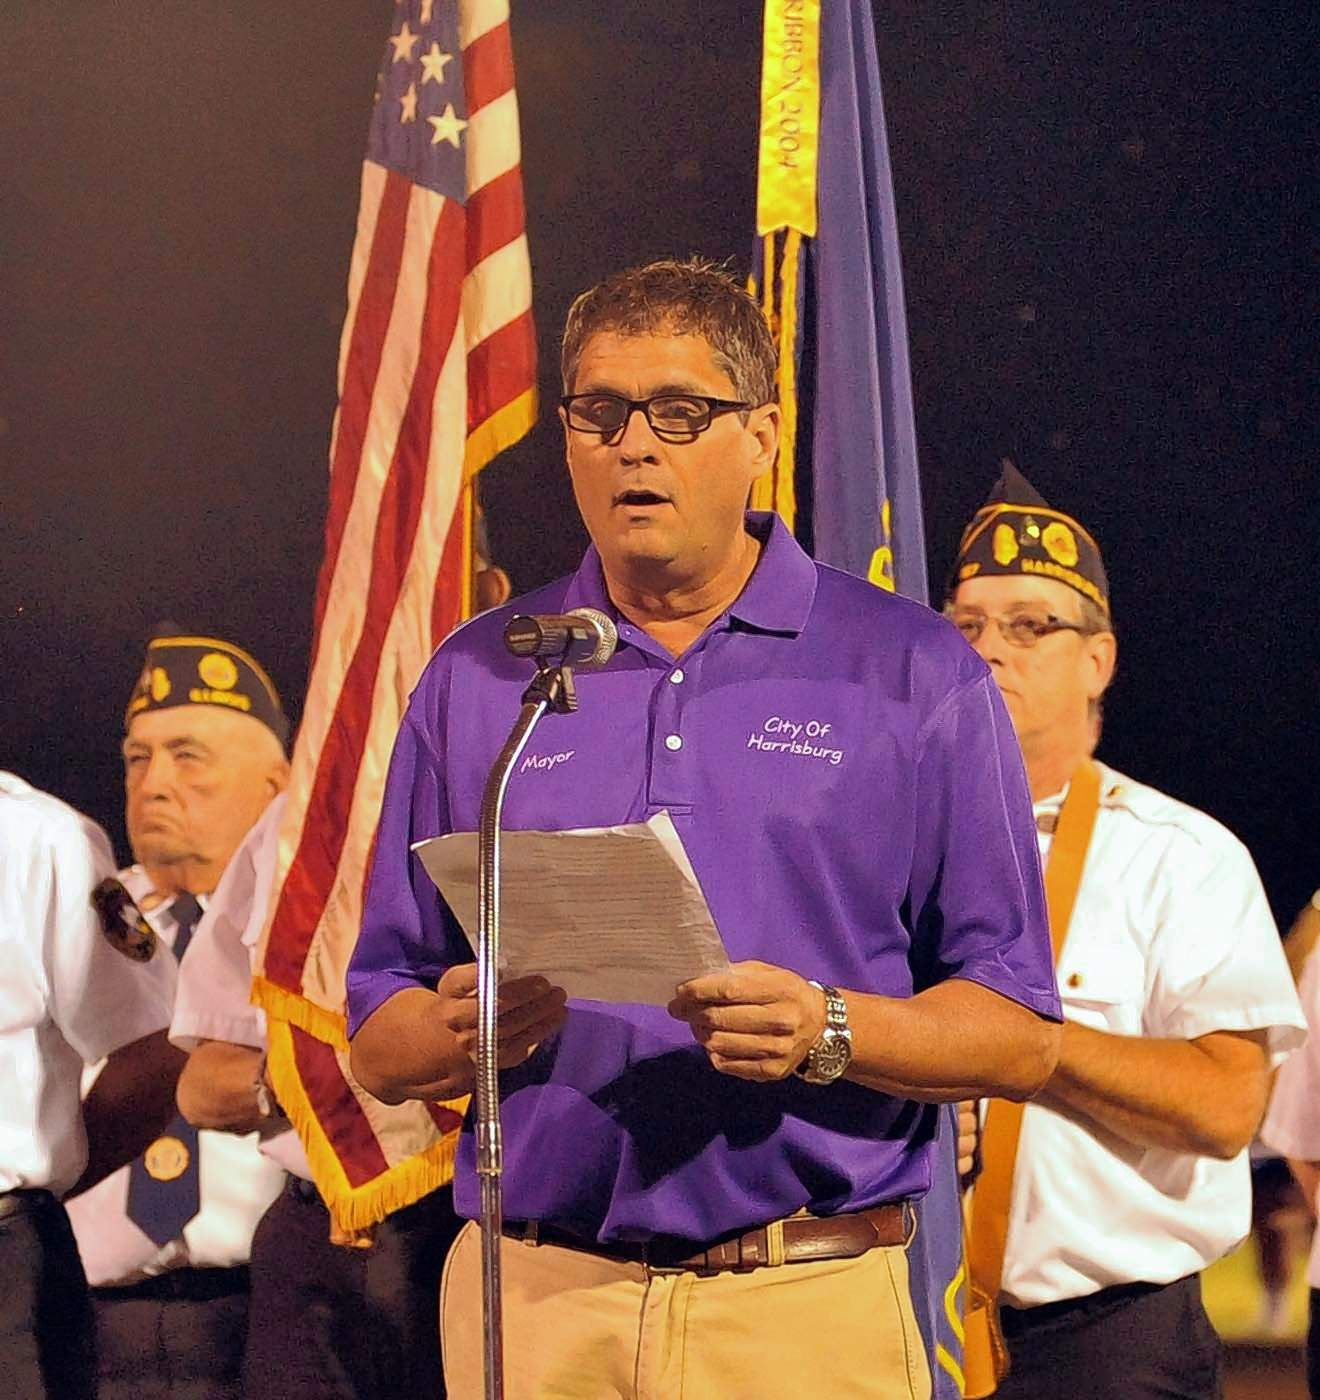 Harrrisburg Mayor John McPeek addresses the crowd at a 911 remembrance ceremony Friday at halftime of the football game.